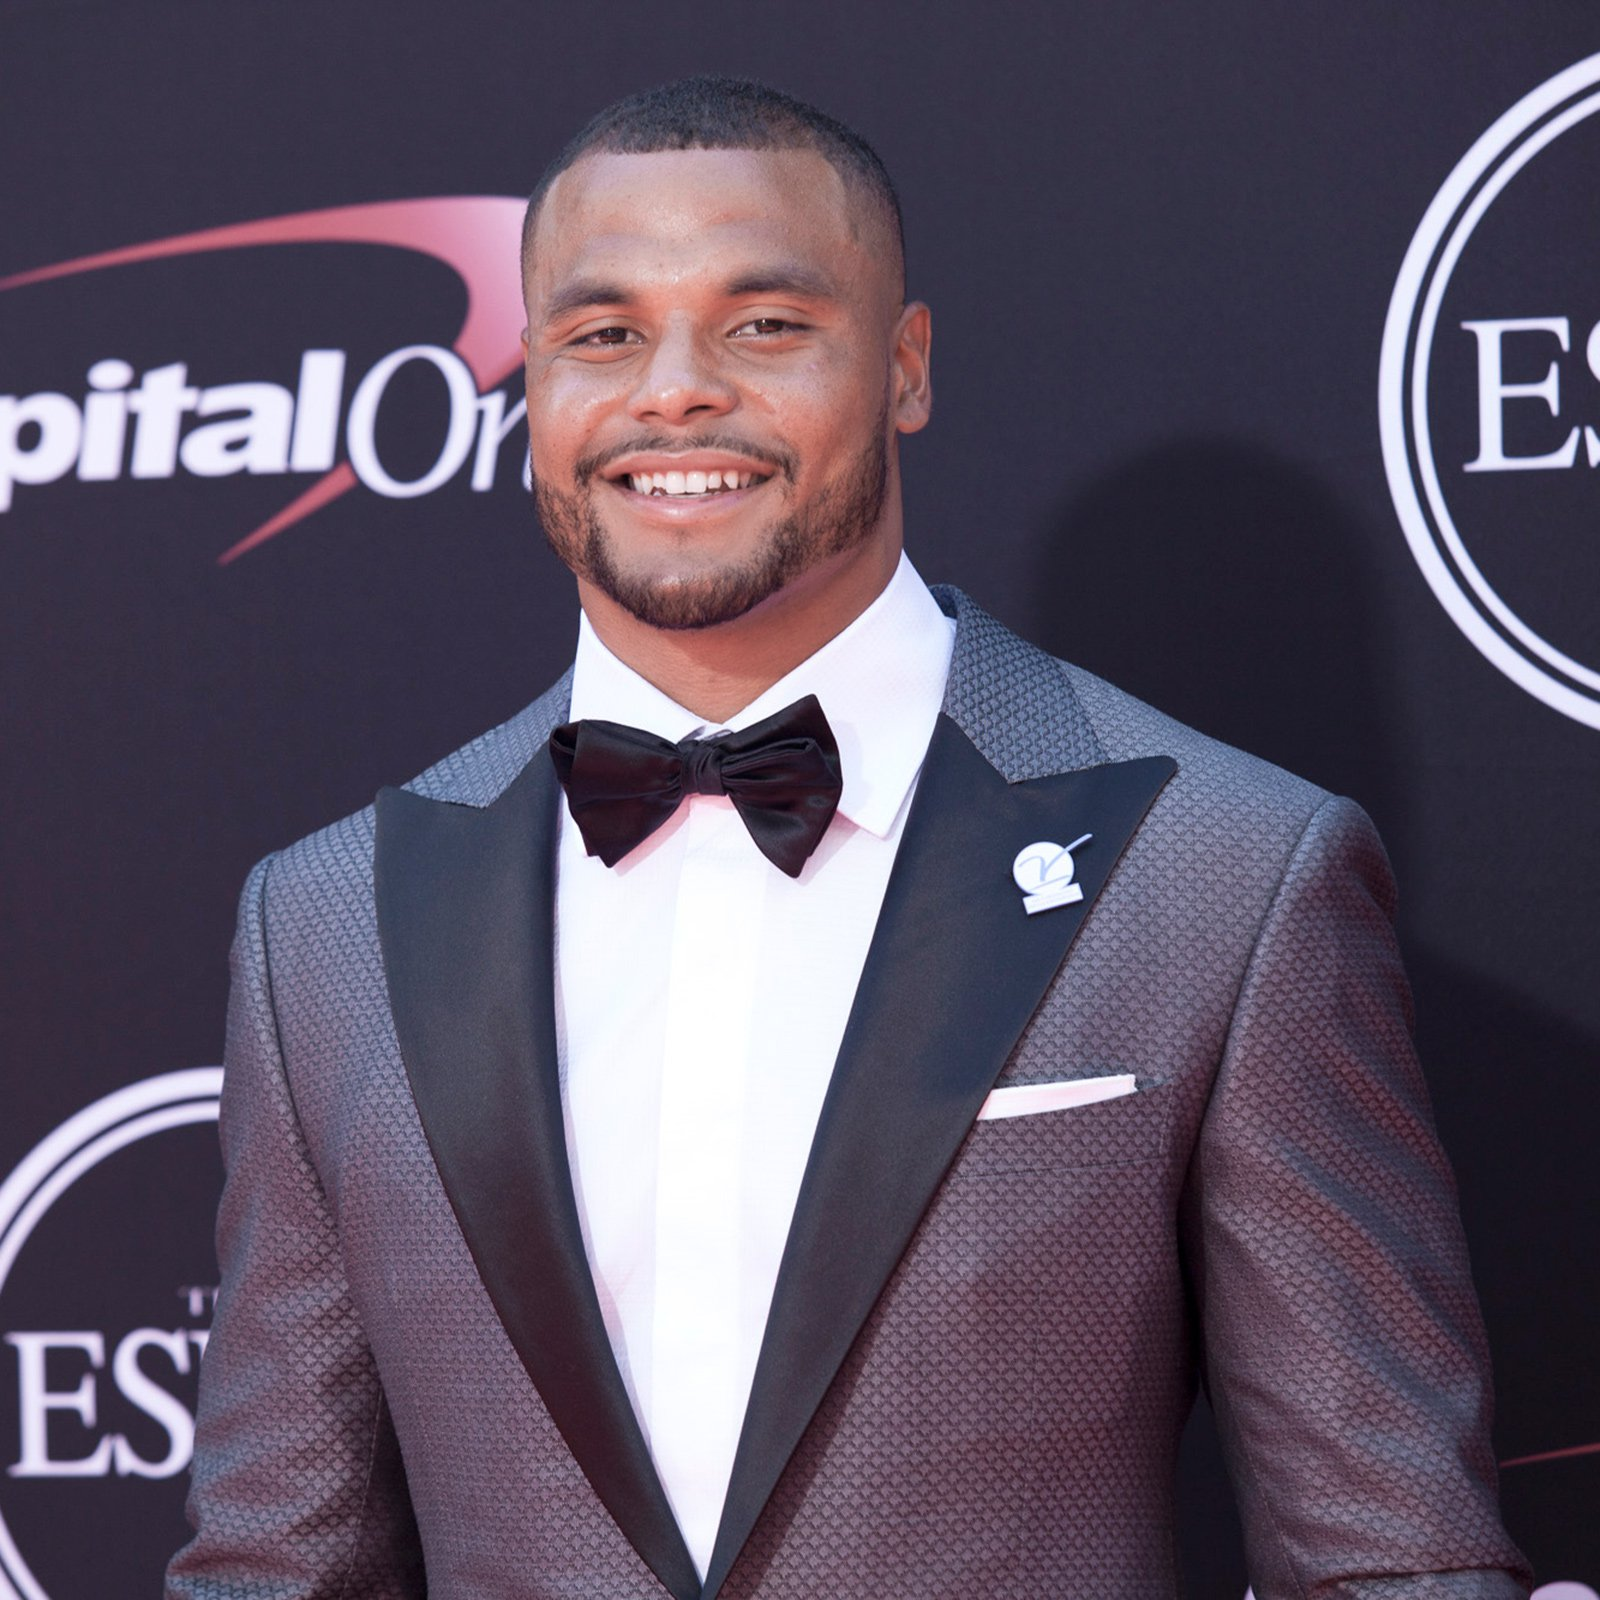 Dallas Cowboys quarterback Dak Prescott, ESPY winner for Breakthrough Athlete.